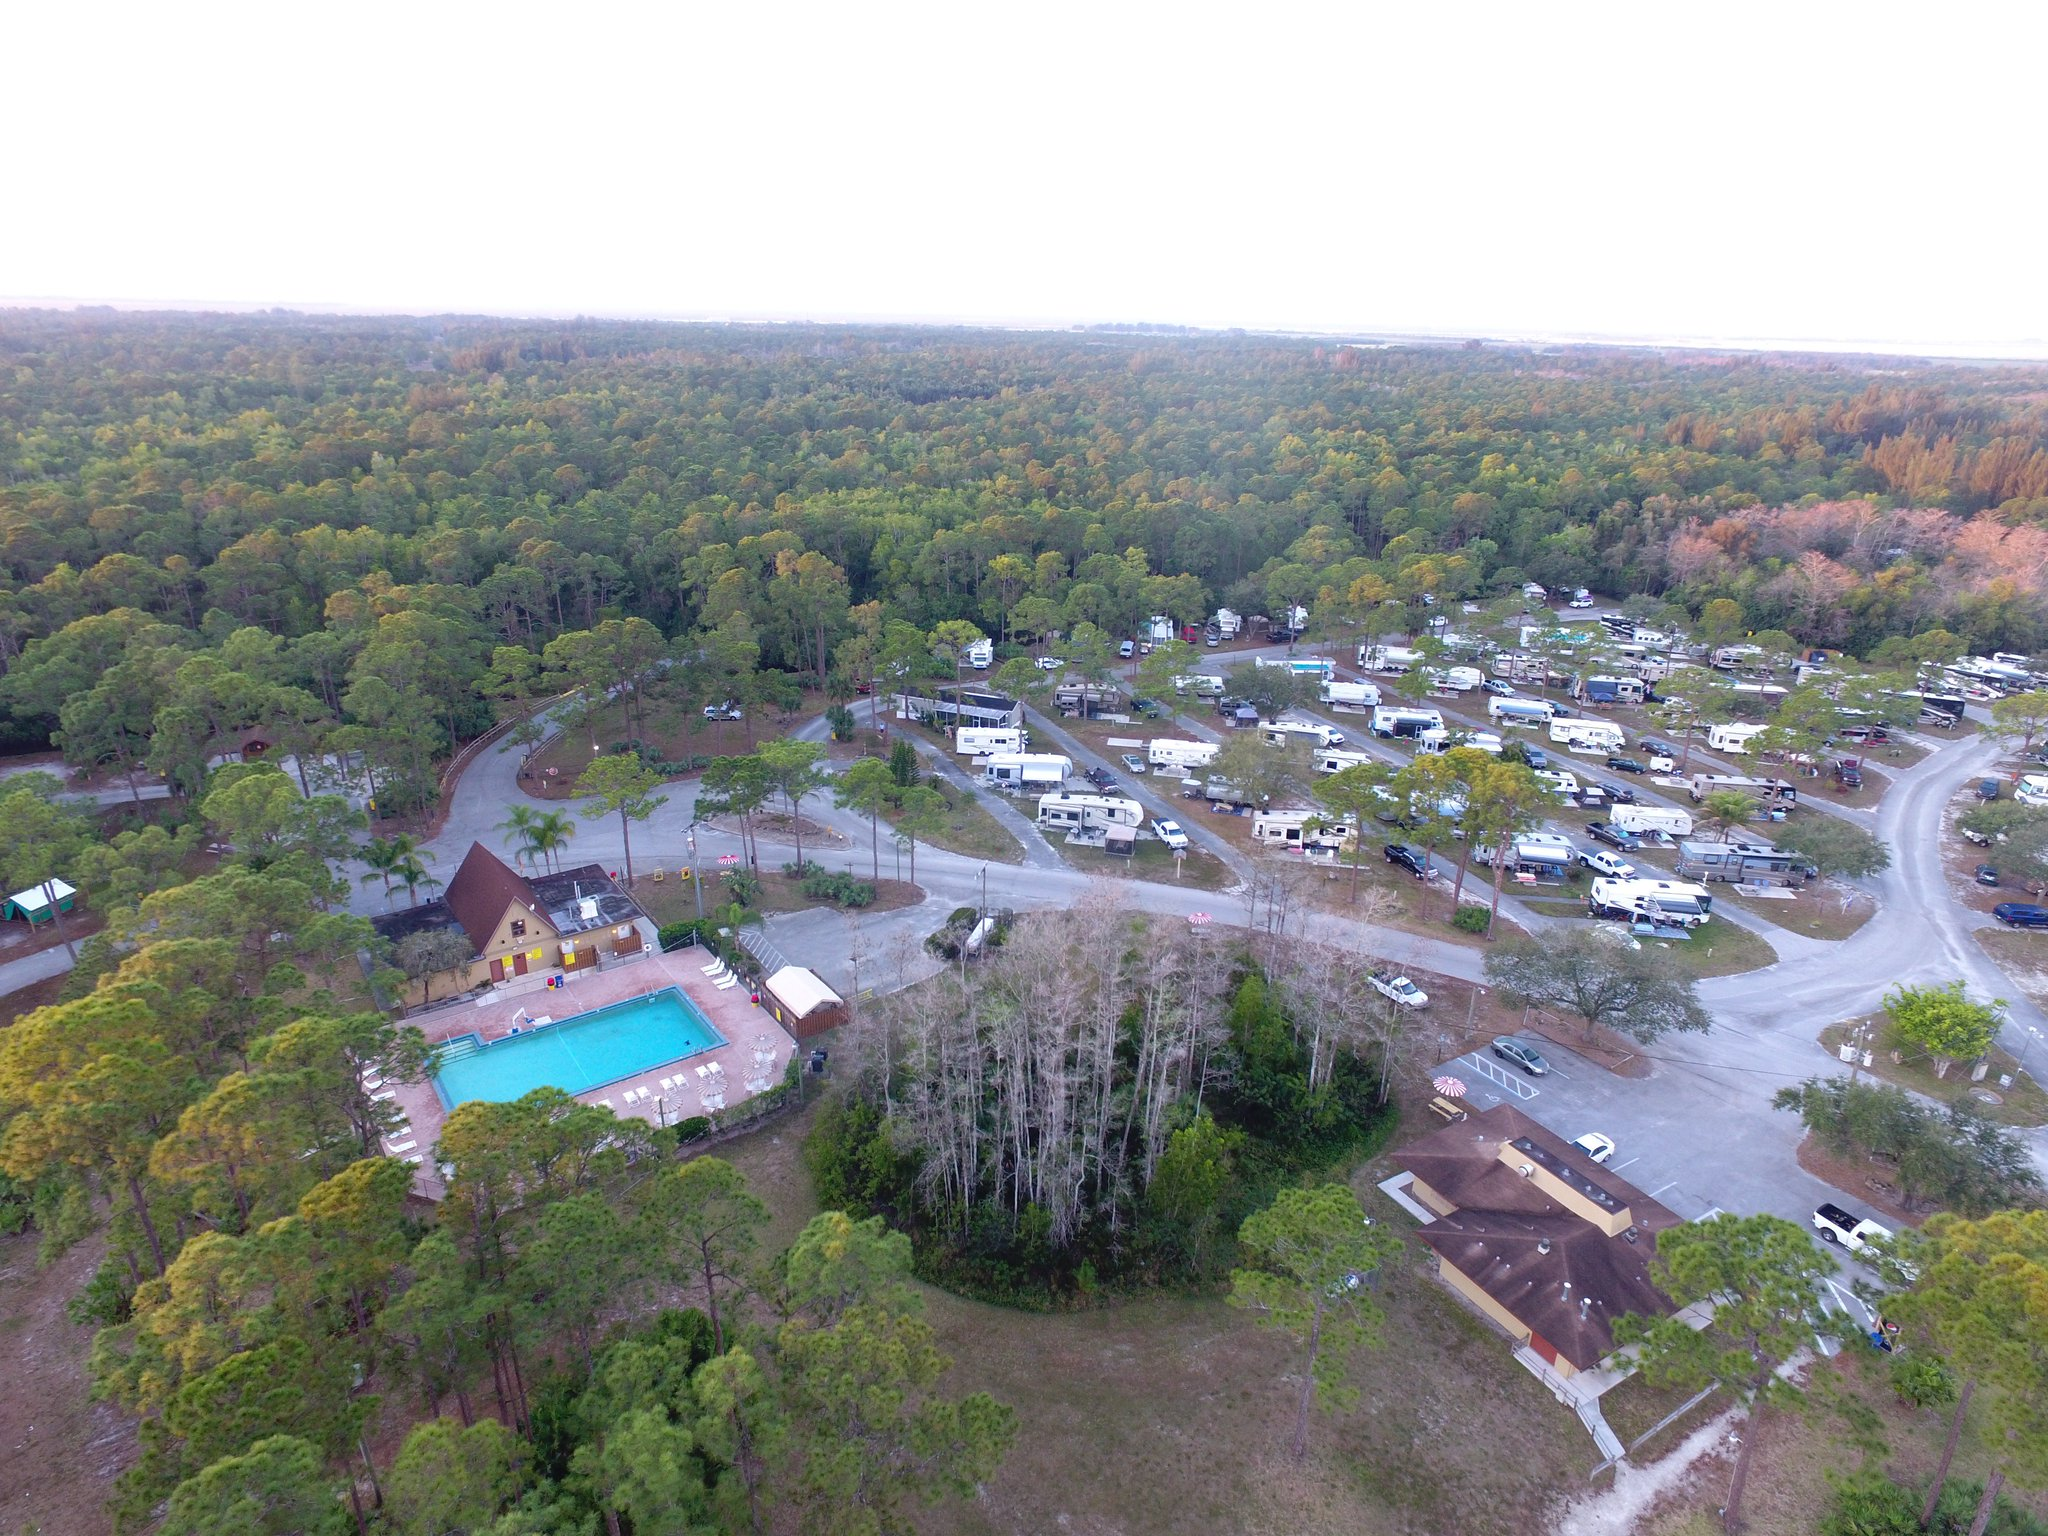 """Lion Country Safari on Twitter: """"A6: For some WILD camping fun, make it a  #FamilyAdventure at our #KOA campground 🏕️ . Sleep to the sounds of  night-time Africa & wake to the"""